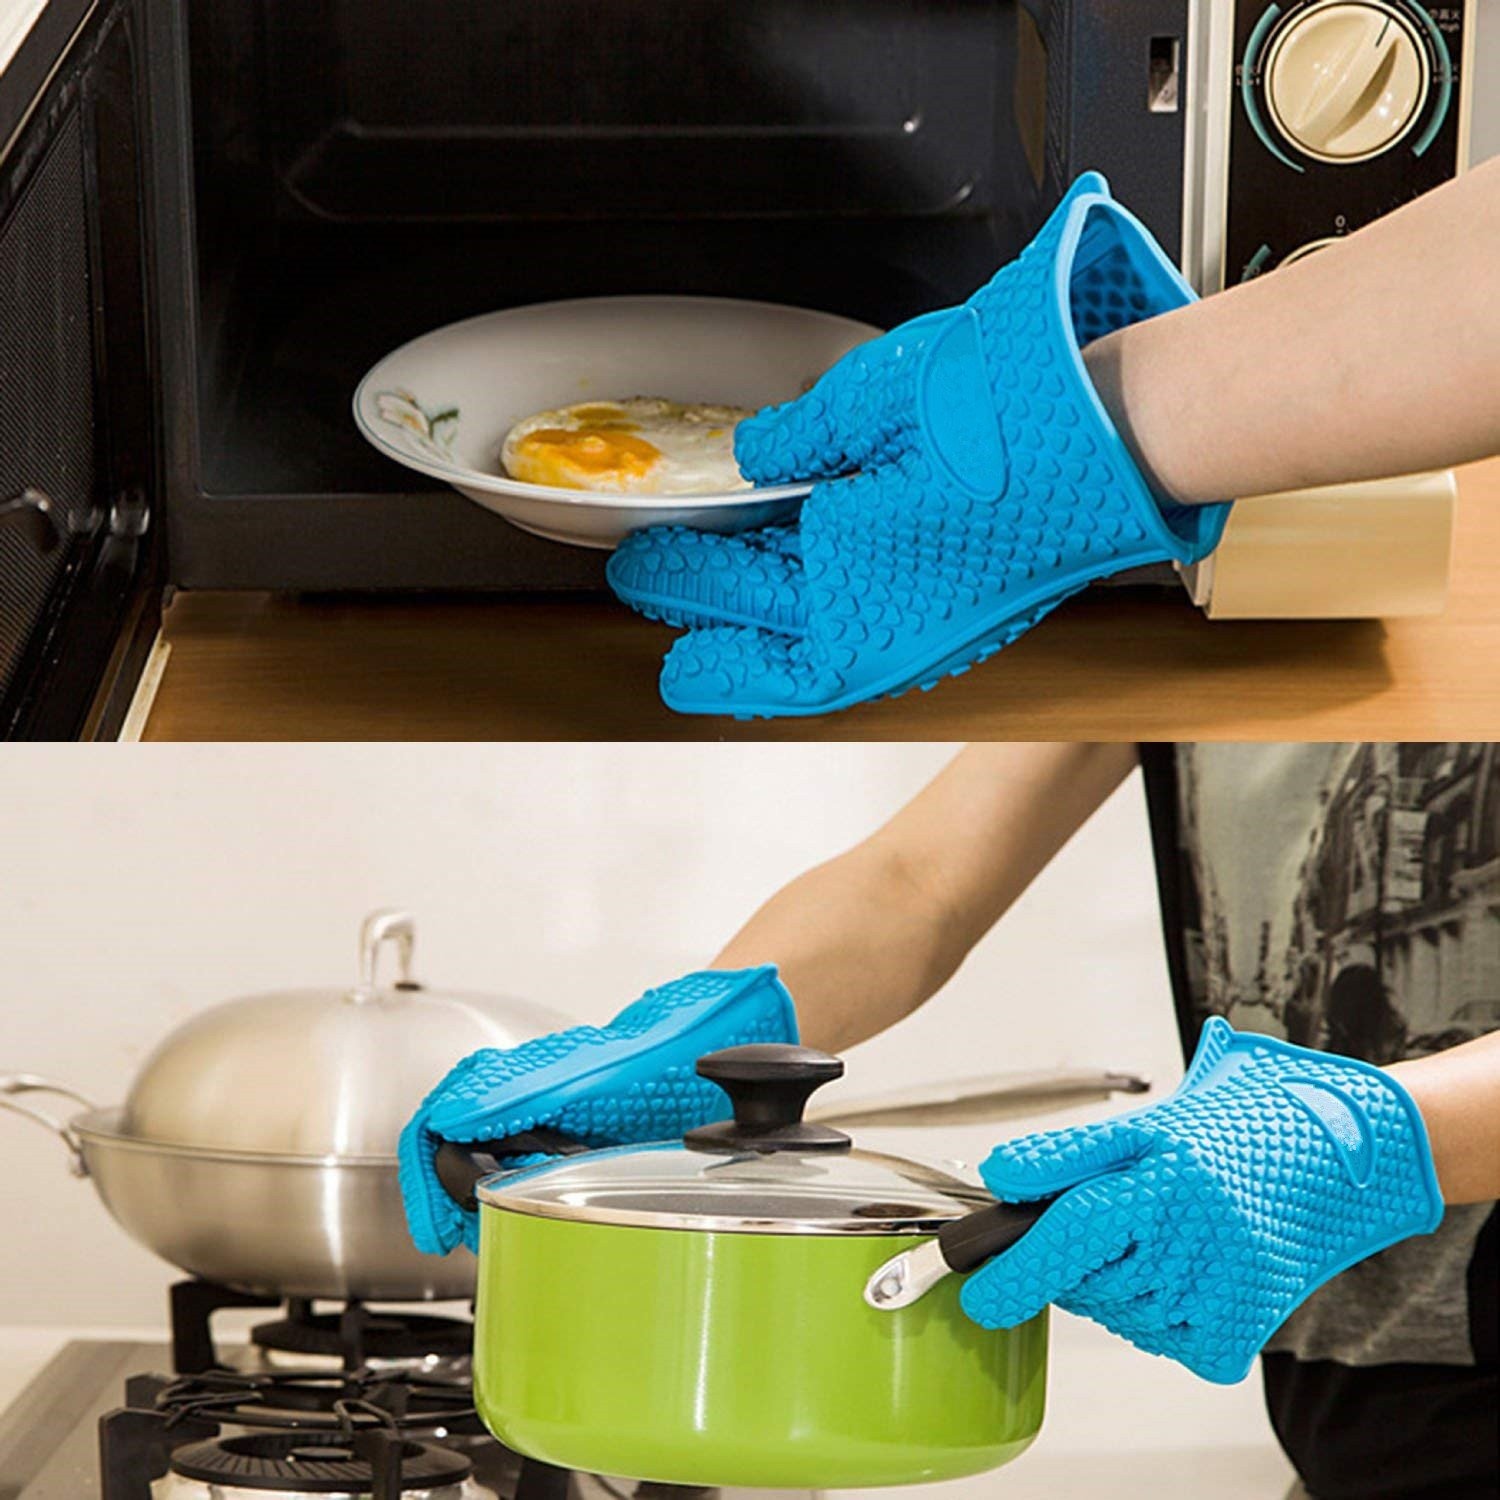 Silicone BBQ Gloves - Oceom Best Heat Resistant Non-slip Oven Mitts For Cooking, Baking, BBQ, Oven, Microwave, Frying, Freezer, Kitchen 1PC (Blue) by Oceom (Image #2)